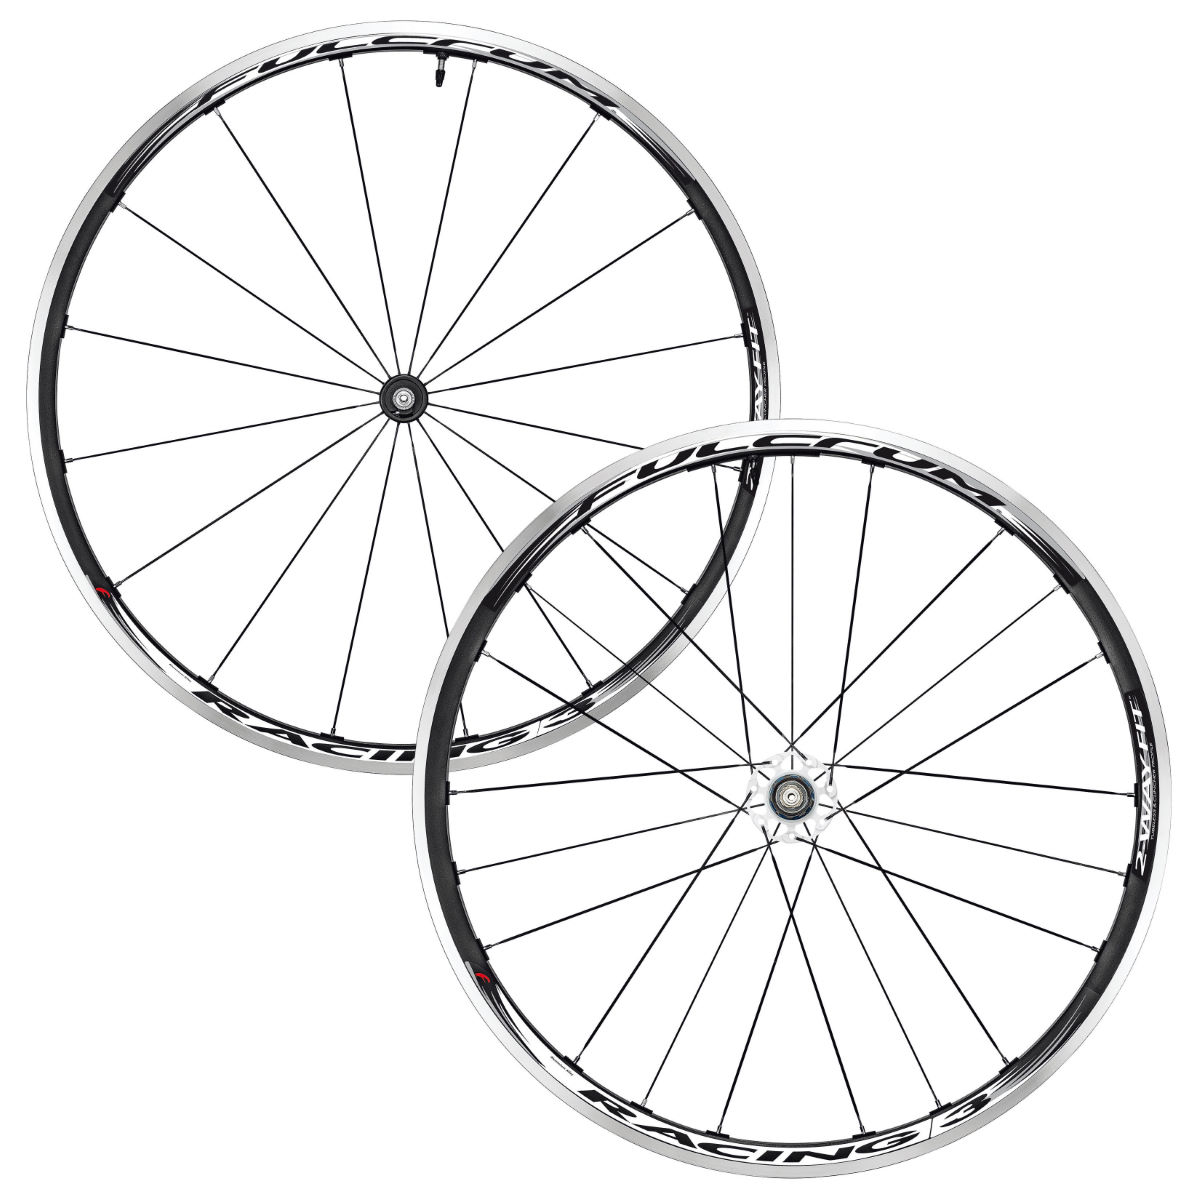 Paire de roues Fulcrum Racing 3 2-Way Fit Tubeless - Shimano/SRAM 9/10/11 Noir/Blanc Roues performance